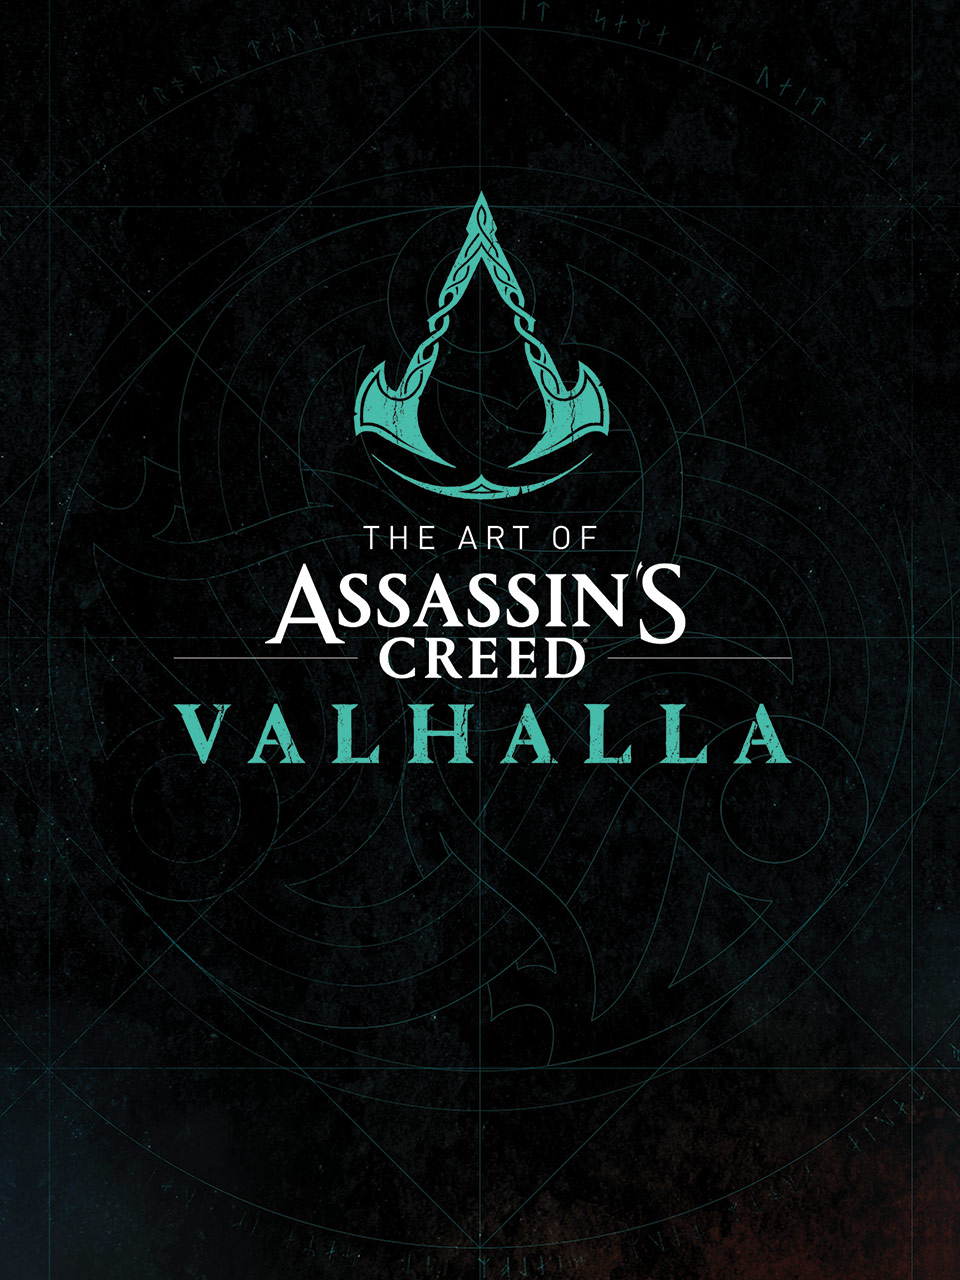 [UN] [News] The Art of Assassin's Creed Valhalla Book Coming Holiday 2020 - Cover